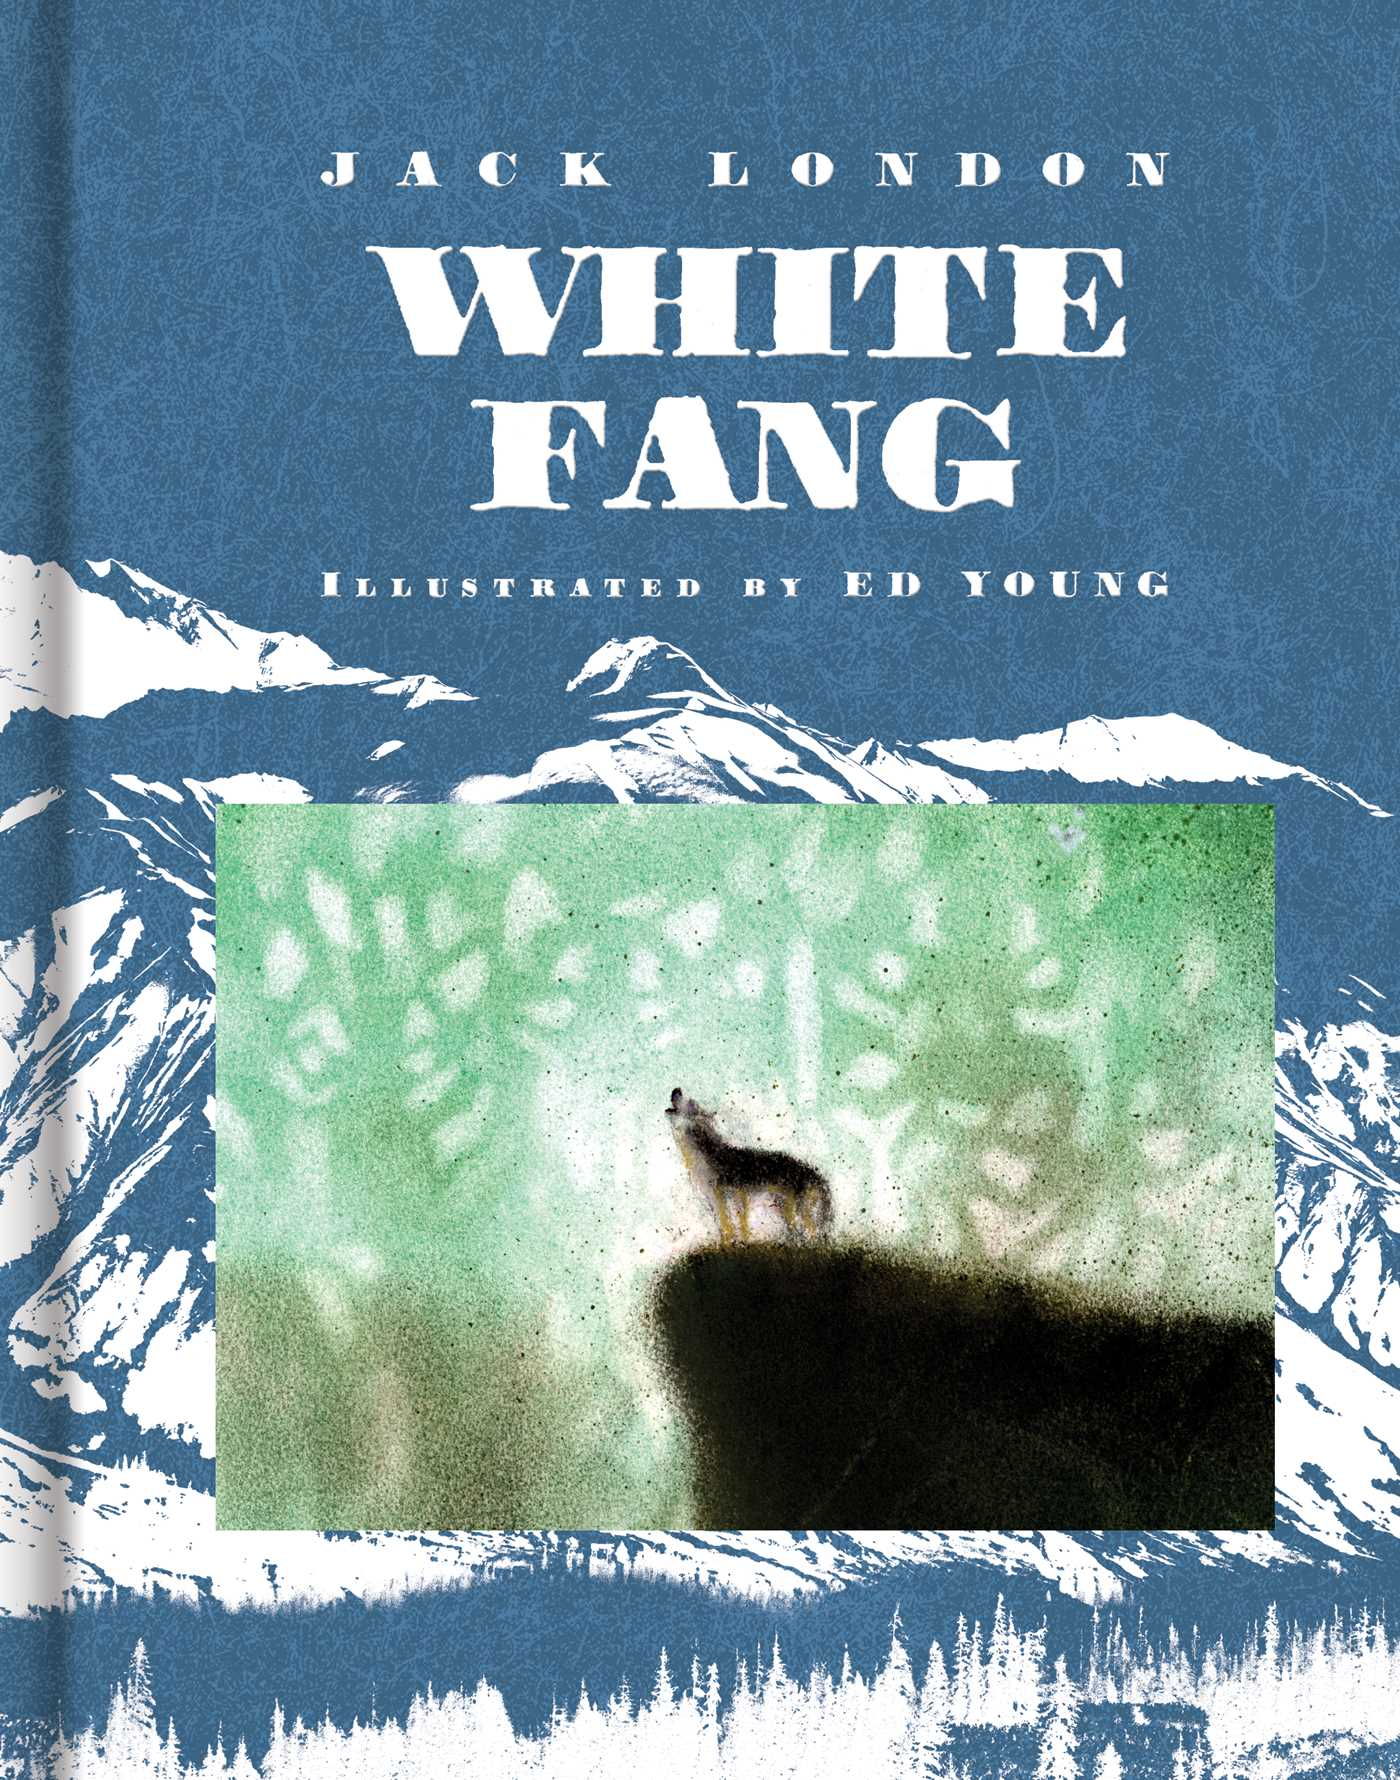 White Fang Book Cover : White fang book by jack london ed young official